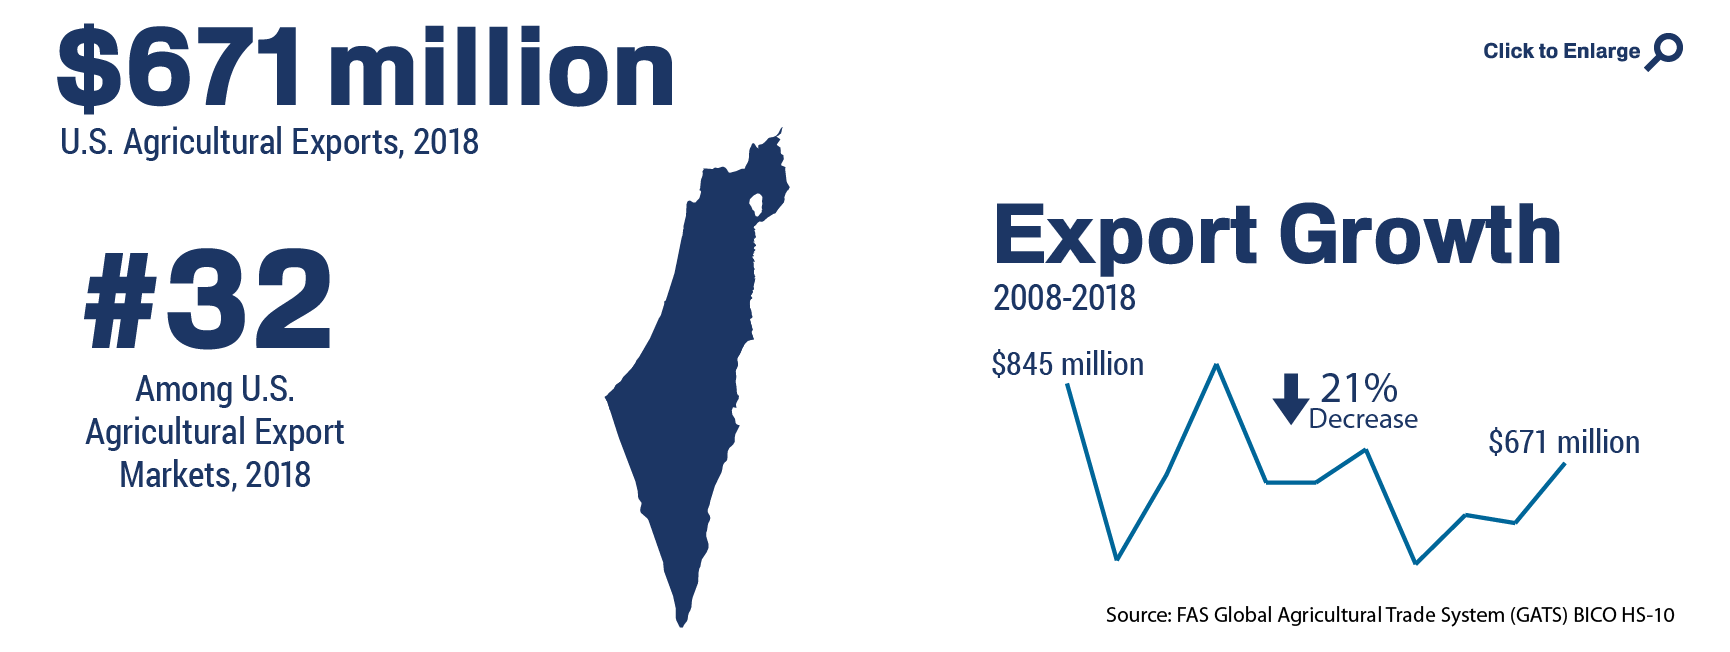 Infographic showing the ranking and total of U.S. agricultural trade to Israel in 2018